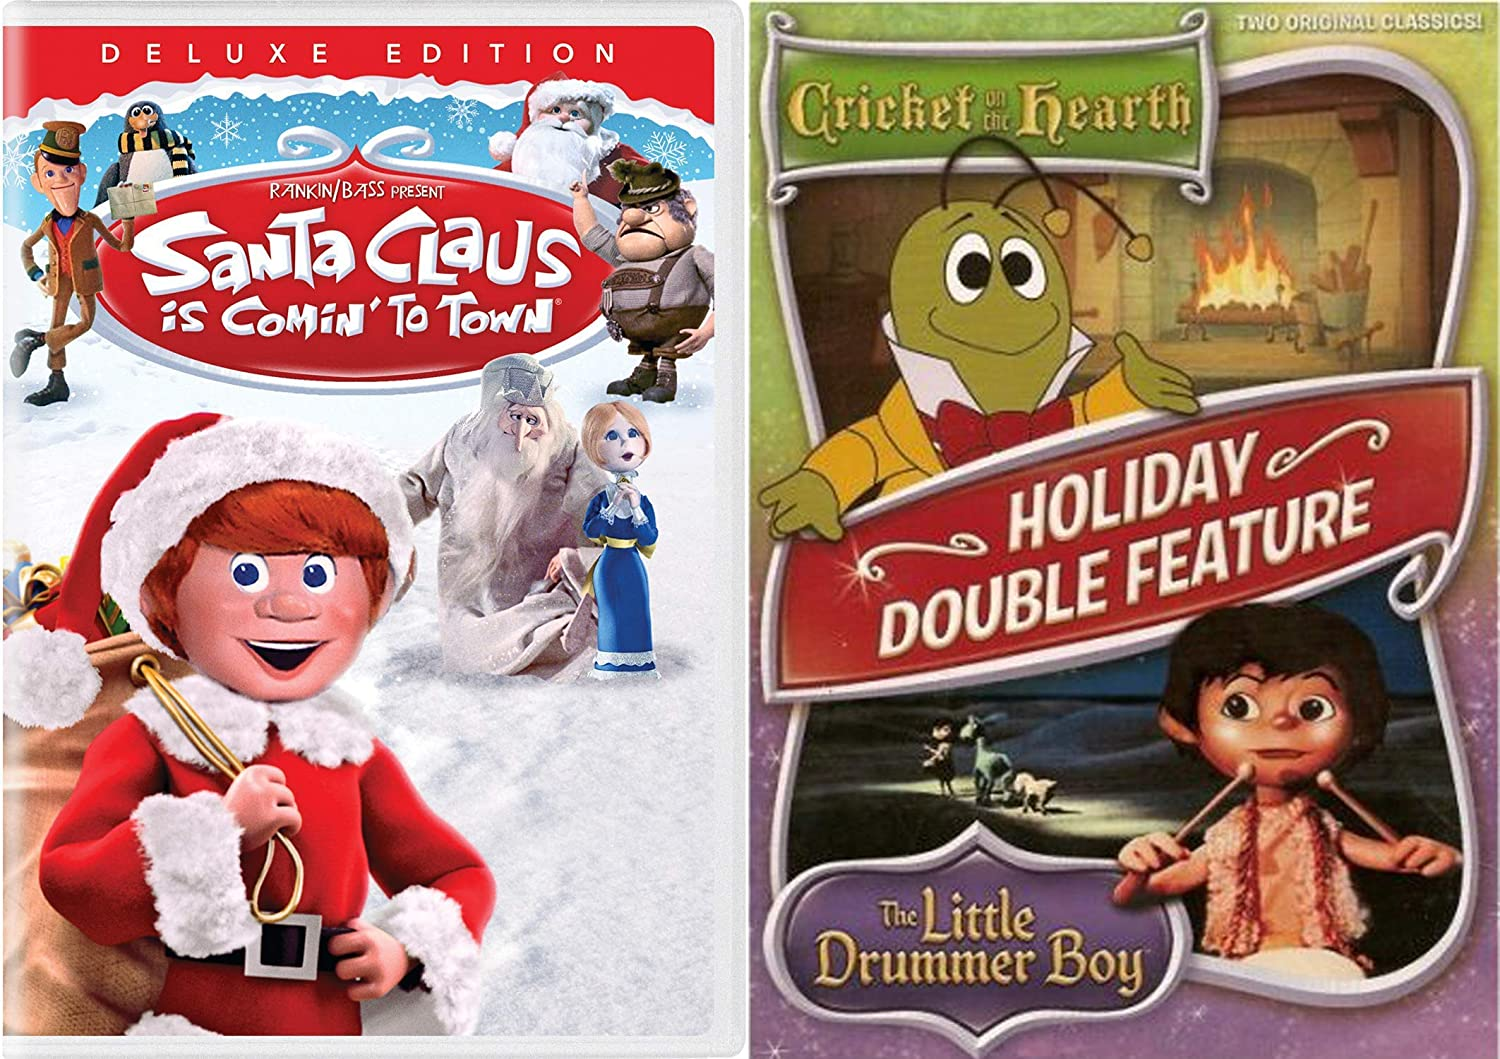 Rankin/Bass Holiday Classics - Santa Claus is Coming to Town Deluxe Edition  & Cricket on the Hearth and Little Drummer Boy Double Feature DVD Bundle:  Amazon.co.uk: DVD & Blu-ray